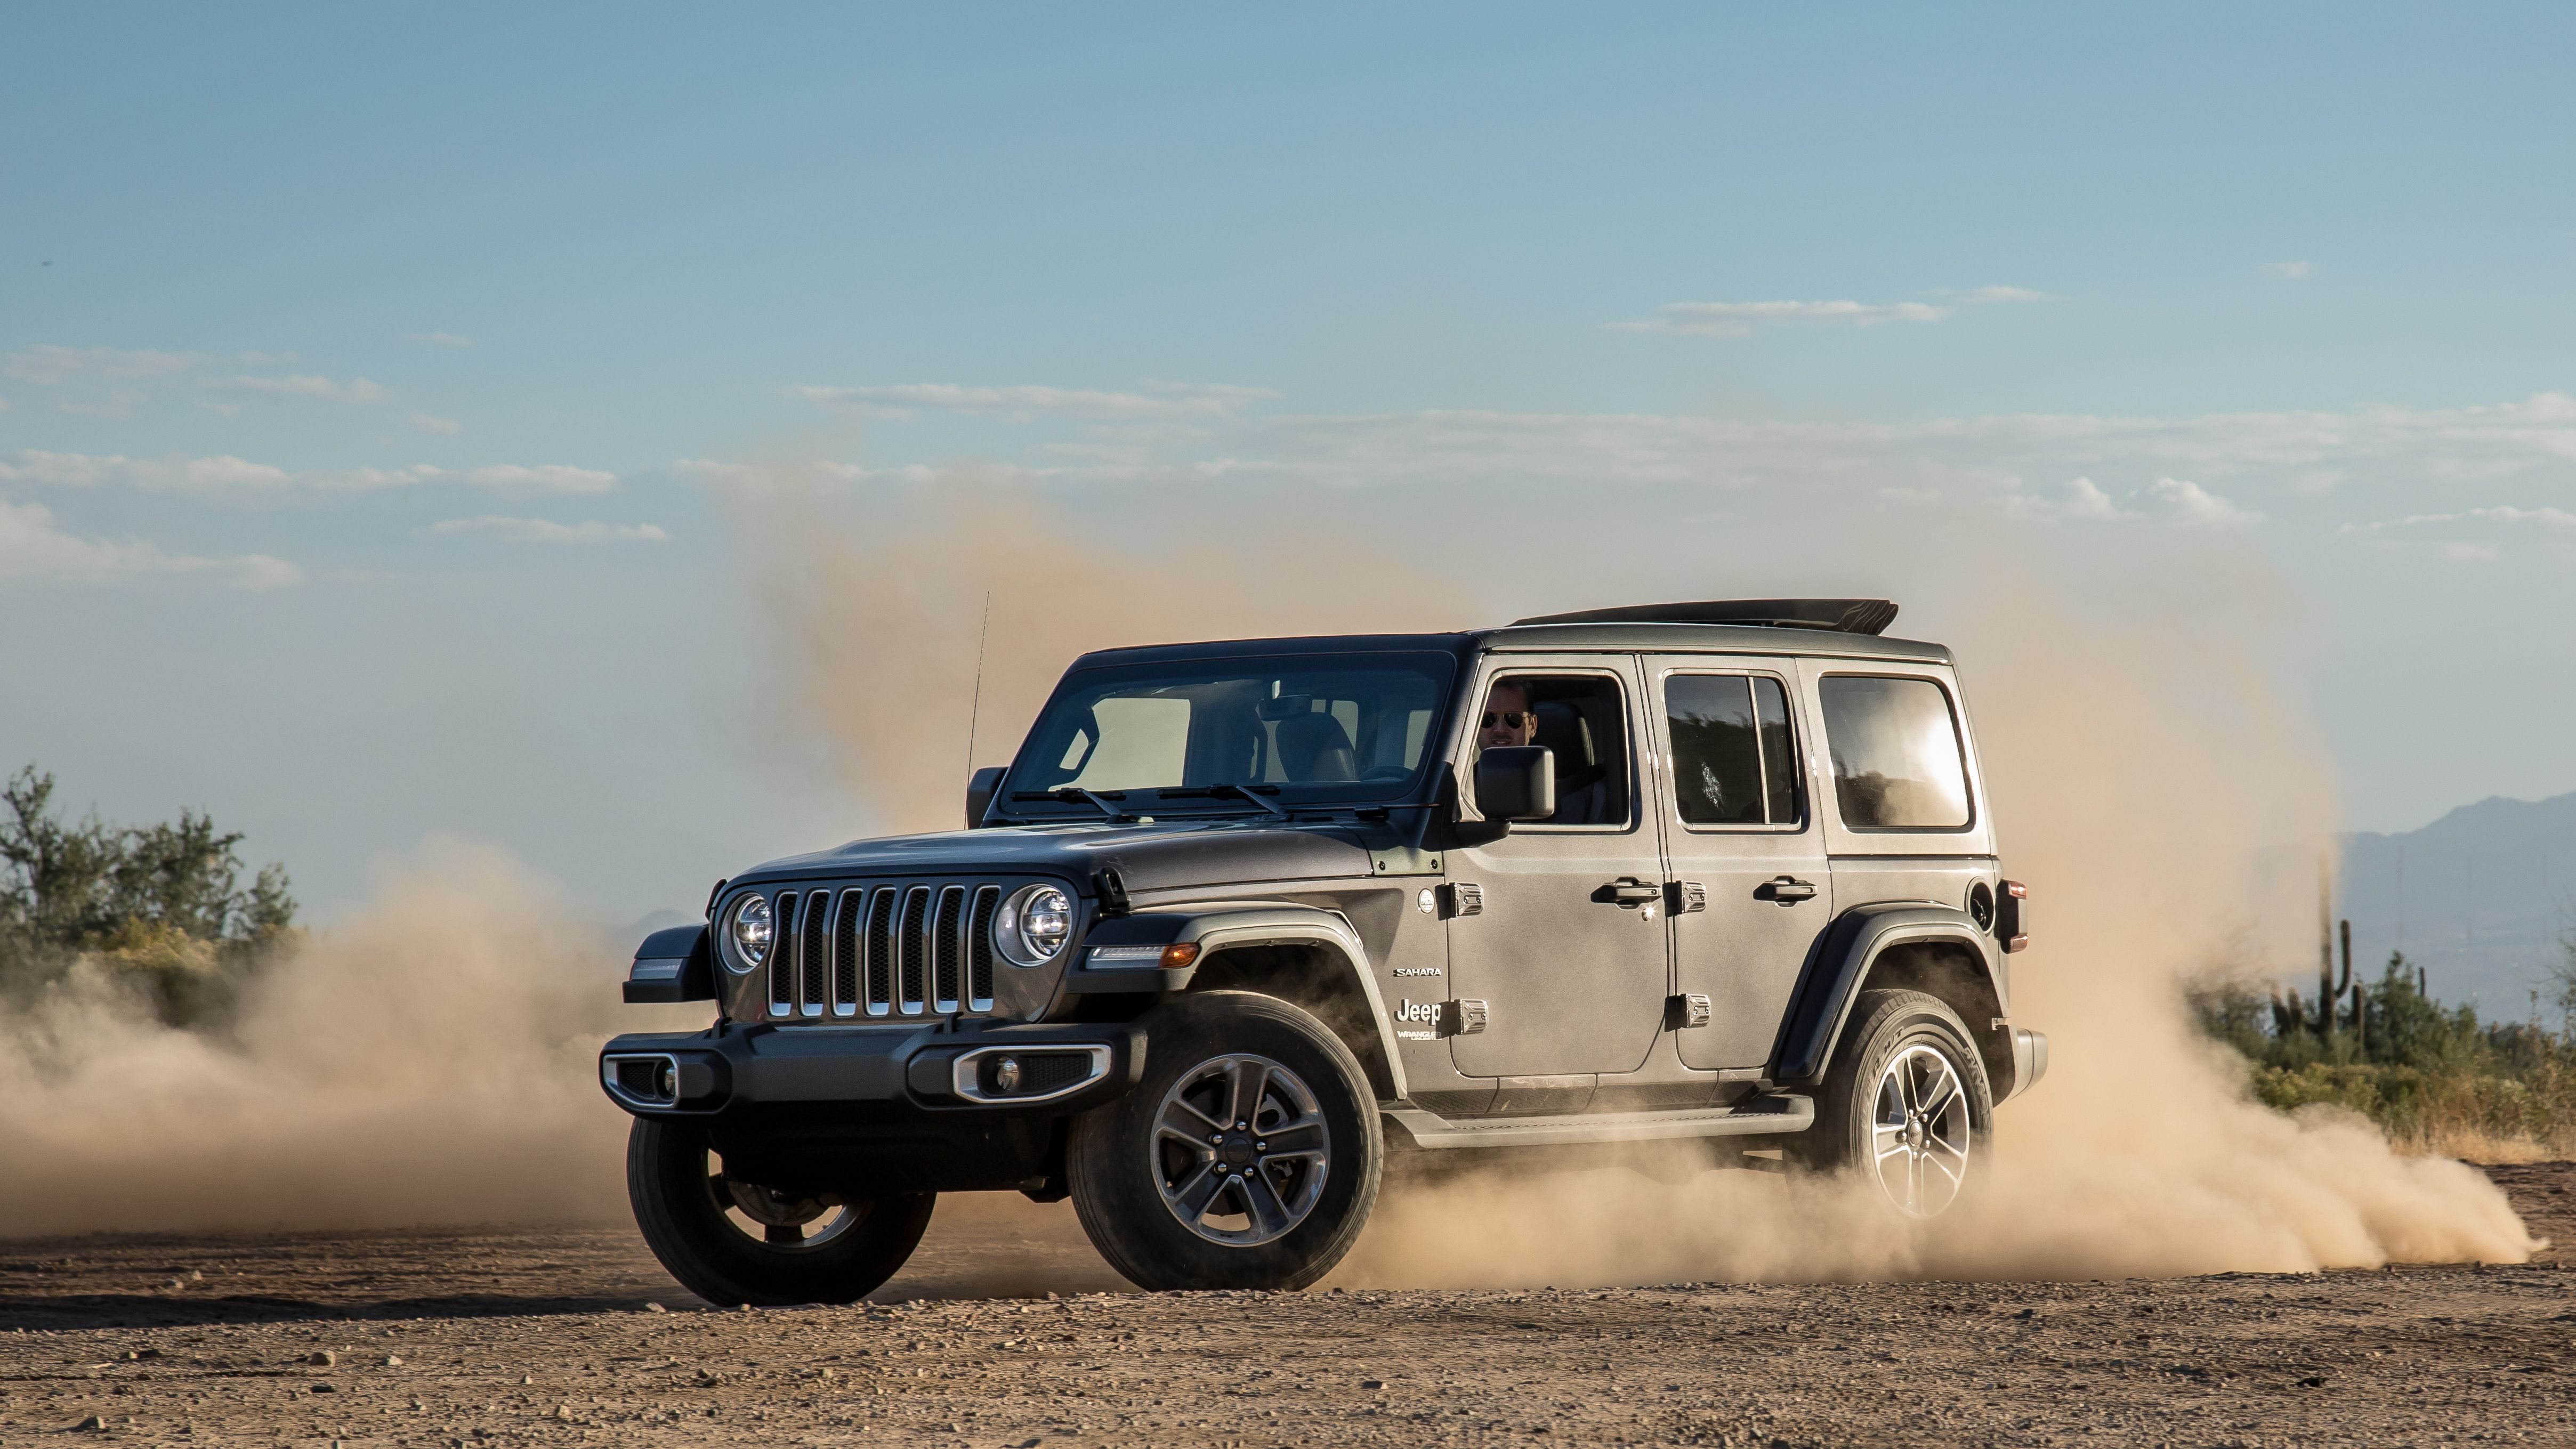 The 2018 Jeep Wrangler Is A Suv That S Great For Small Families Off Road Shoppers And Towing Jeep Wrangler Jeep Jeep Wrangler Reviews